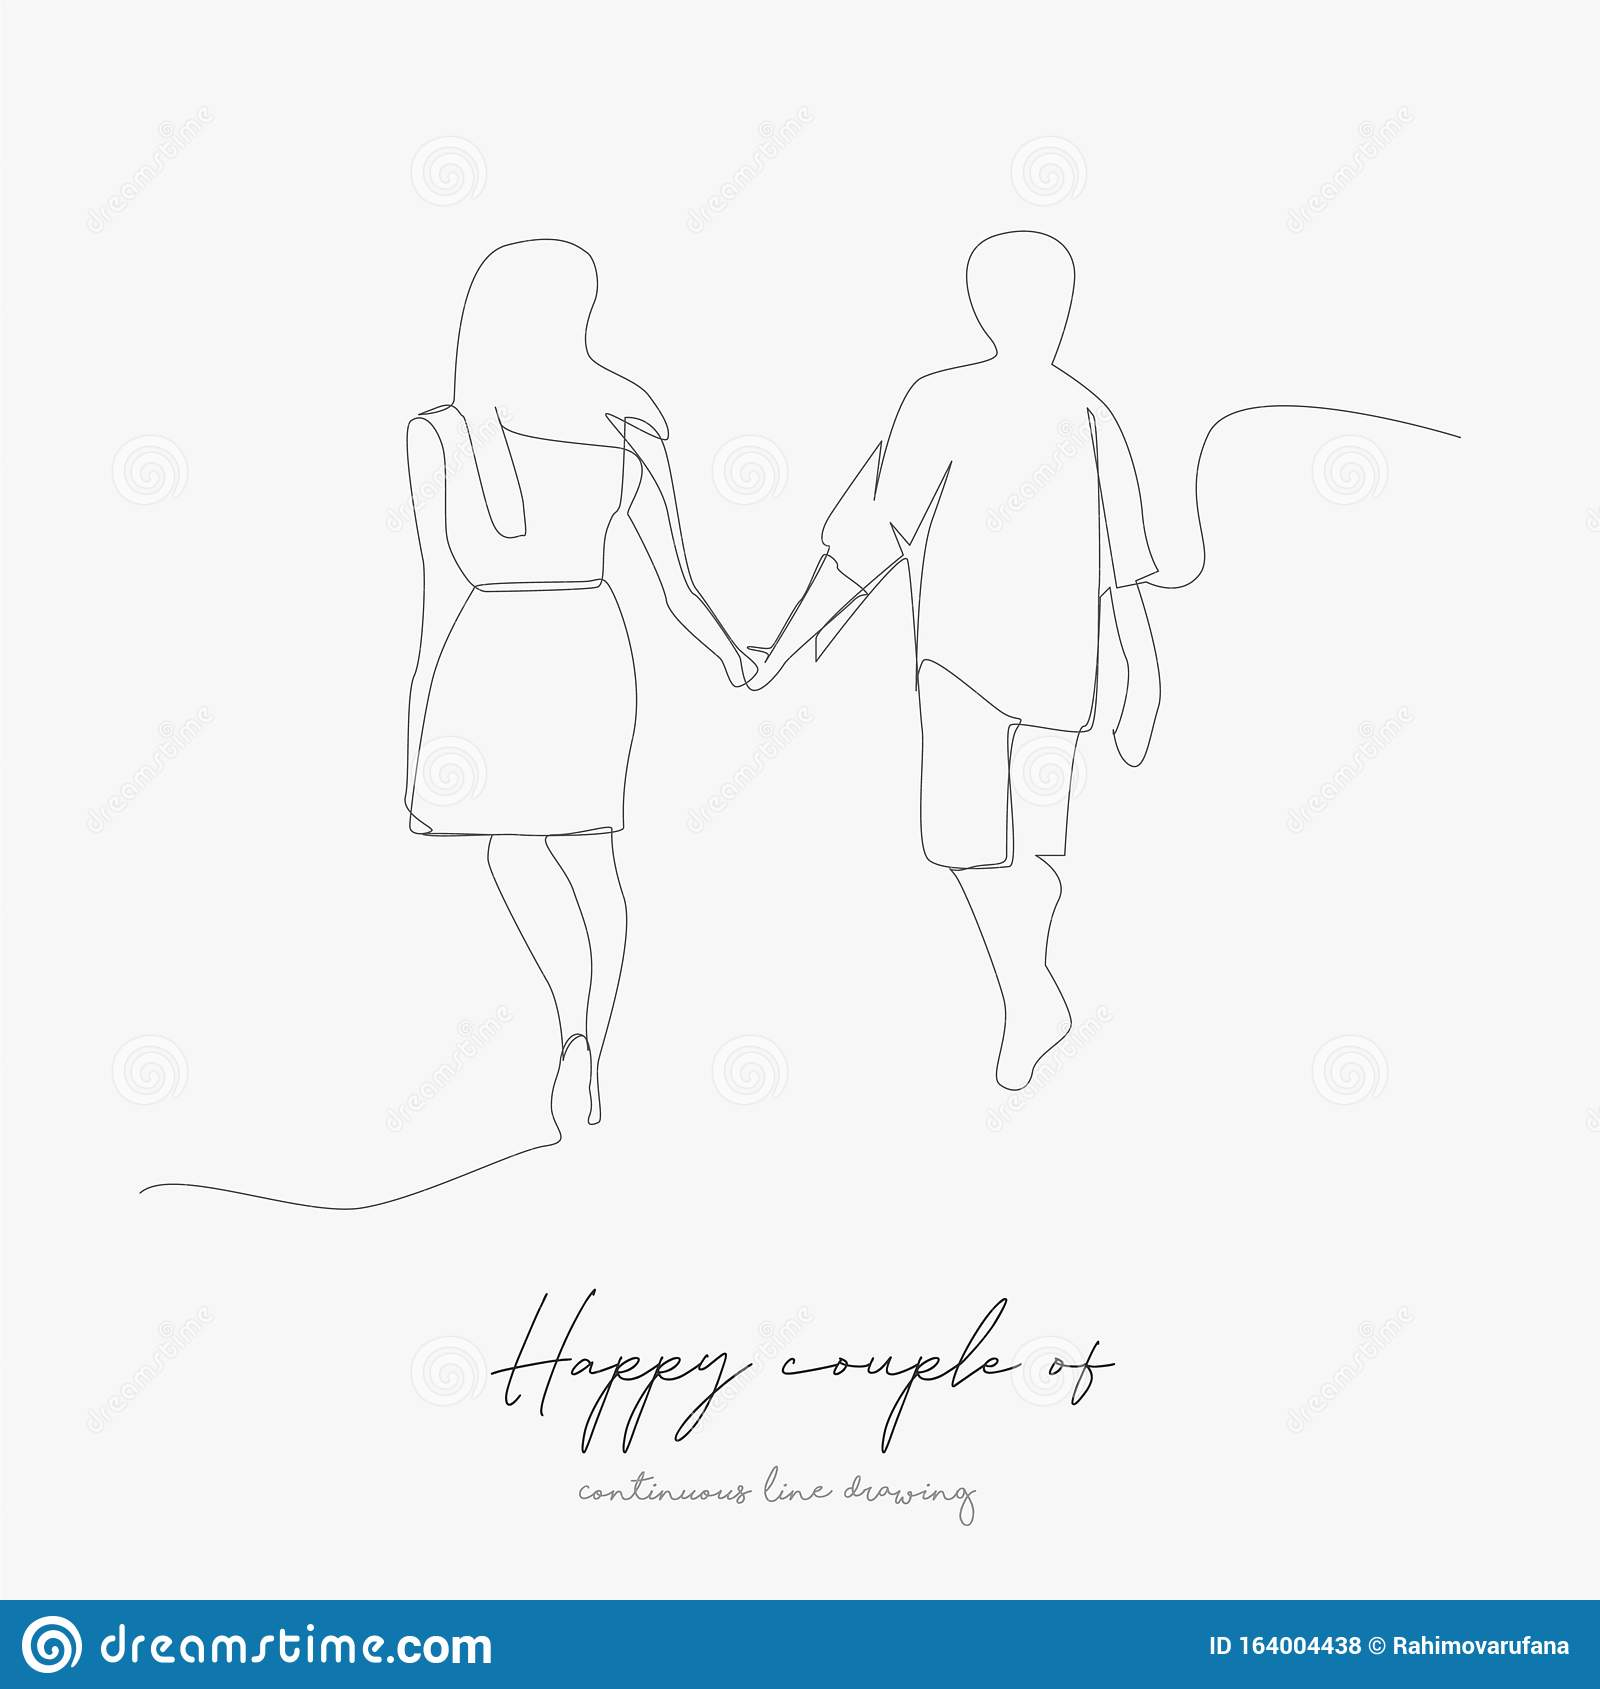 Continuous Line Drawing Happy Couple Of Man And Woman Simple Vector Illustration Happy Couple Of Man And Woman Concept Hand Stock Vector Illustration Of Icon Adult 164004438